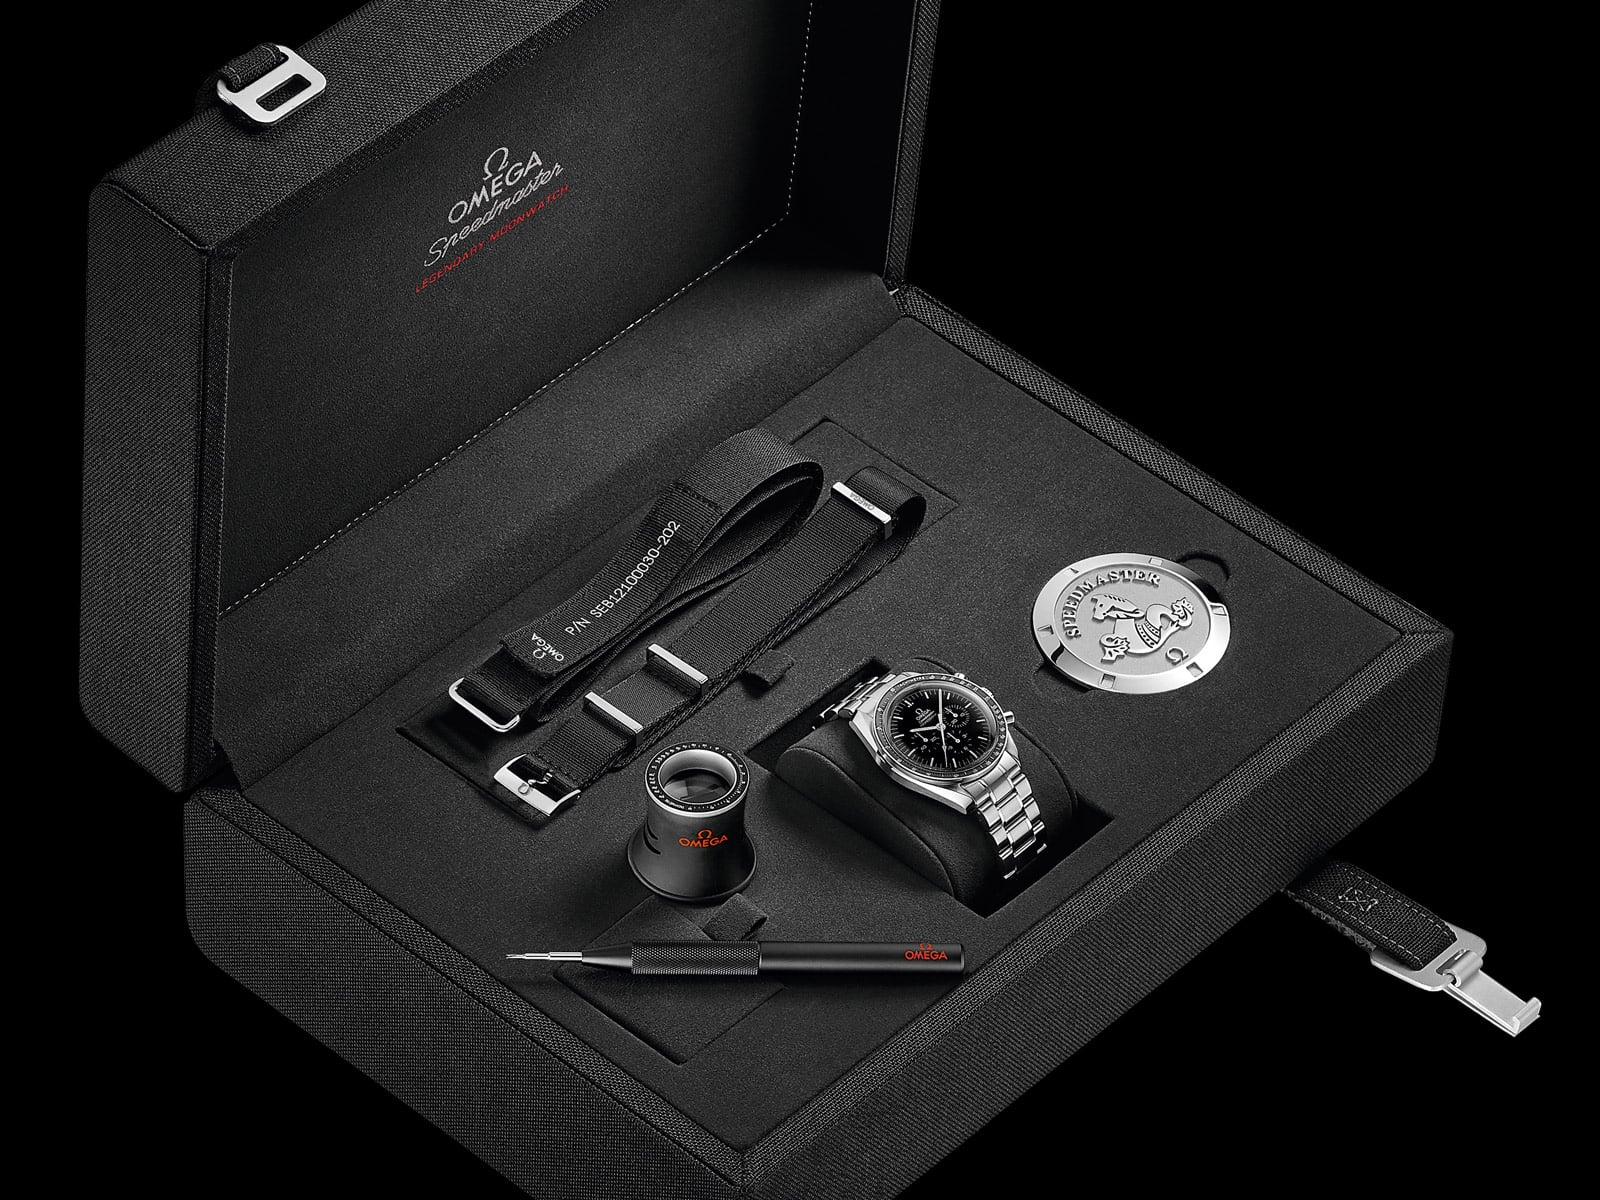 Special presentation box of the SPEEDMASTER PROFESSIONAL MOONWATCH with two additional straps plus a tool to change bracelets and the instructions along with a Speedmaster loupe, a metal plate and a book about the Speedmaster